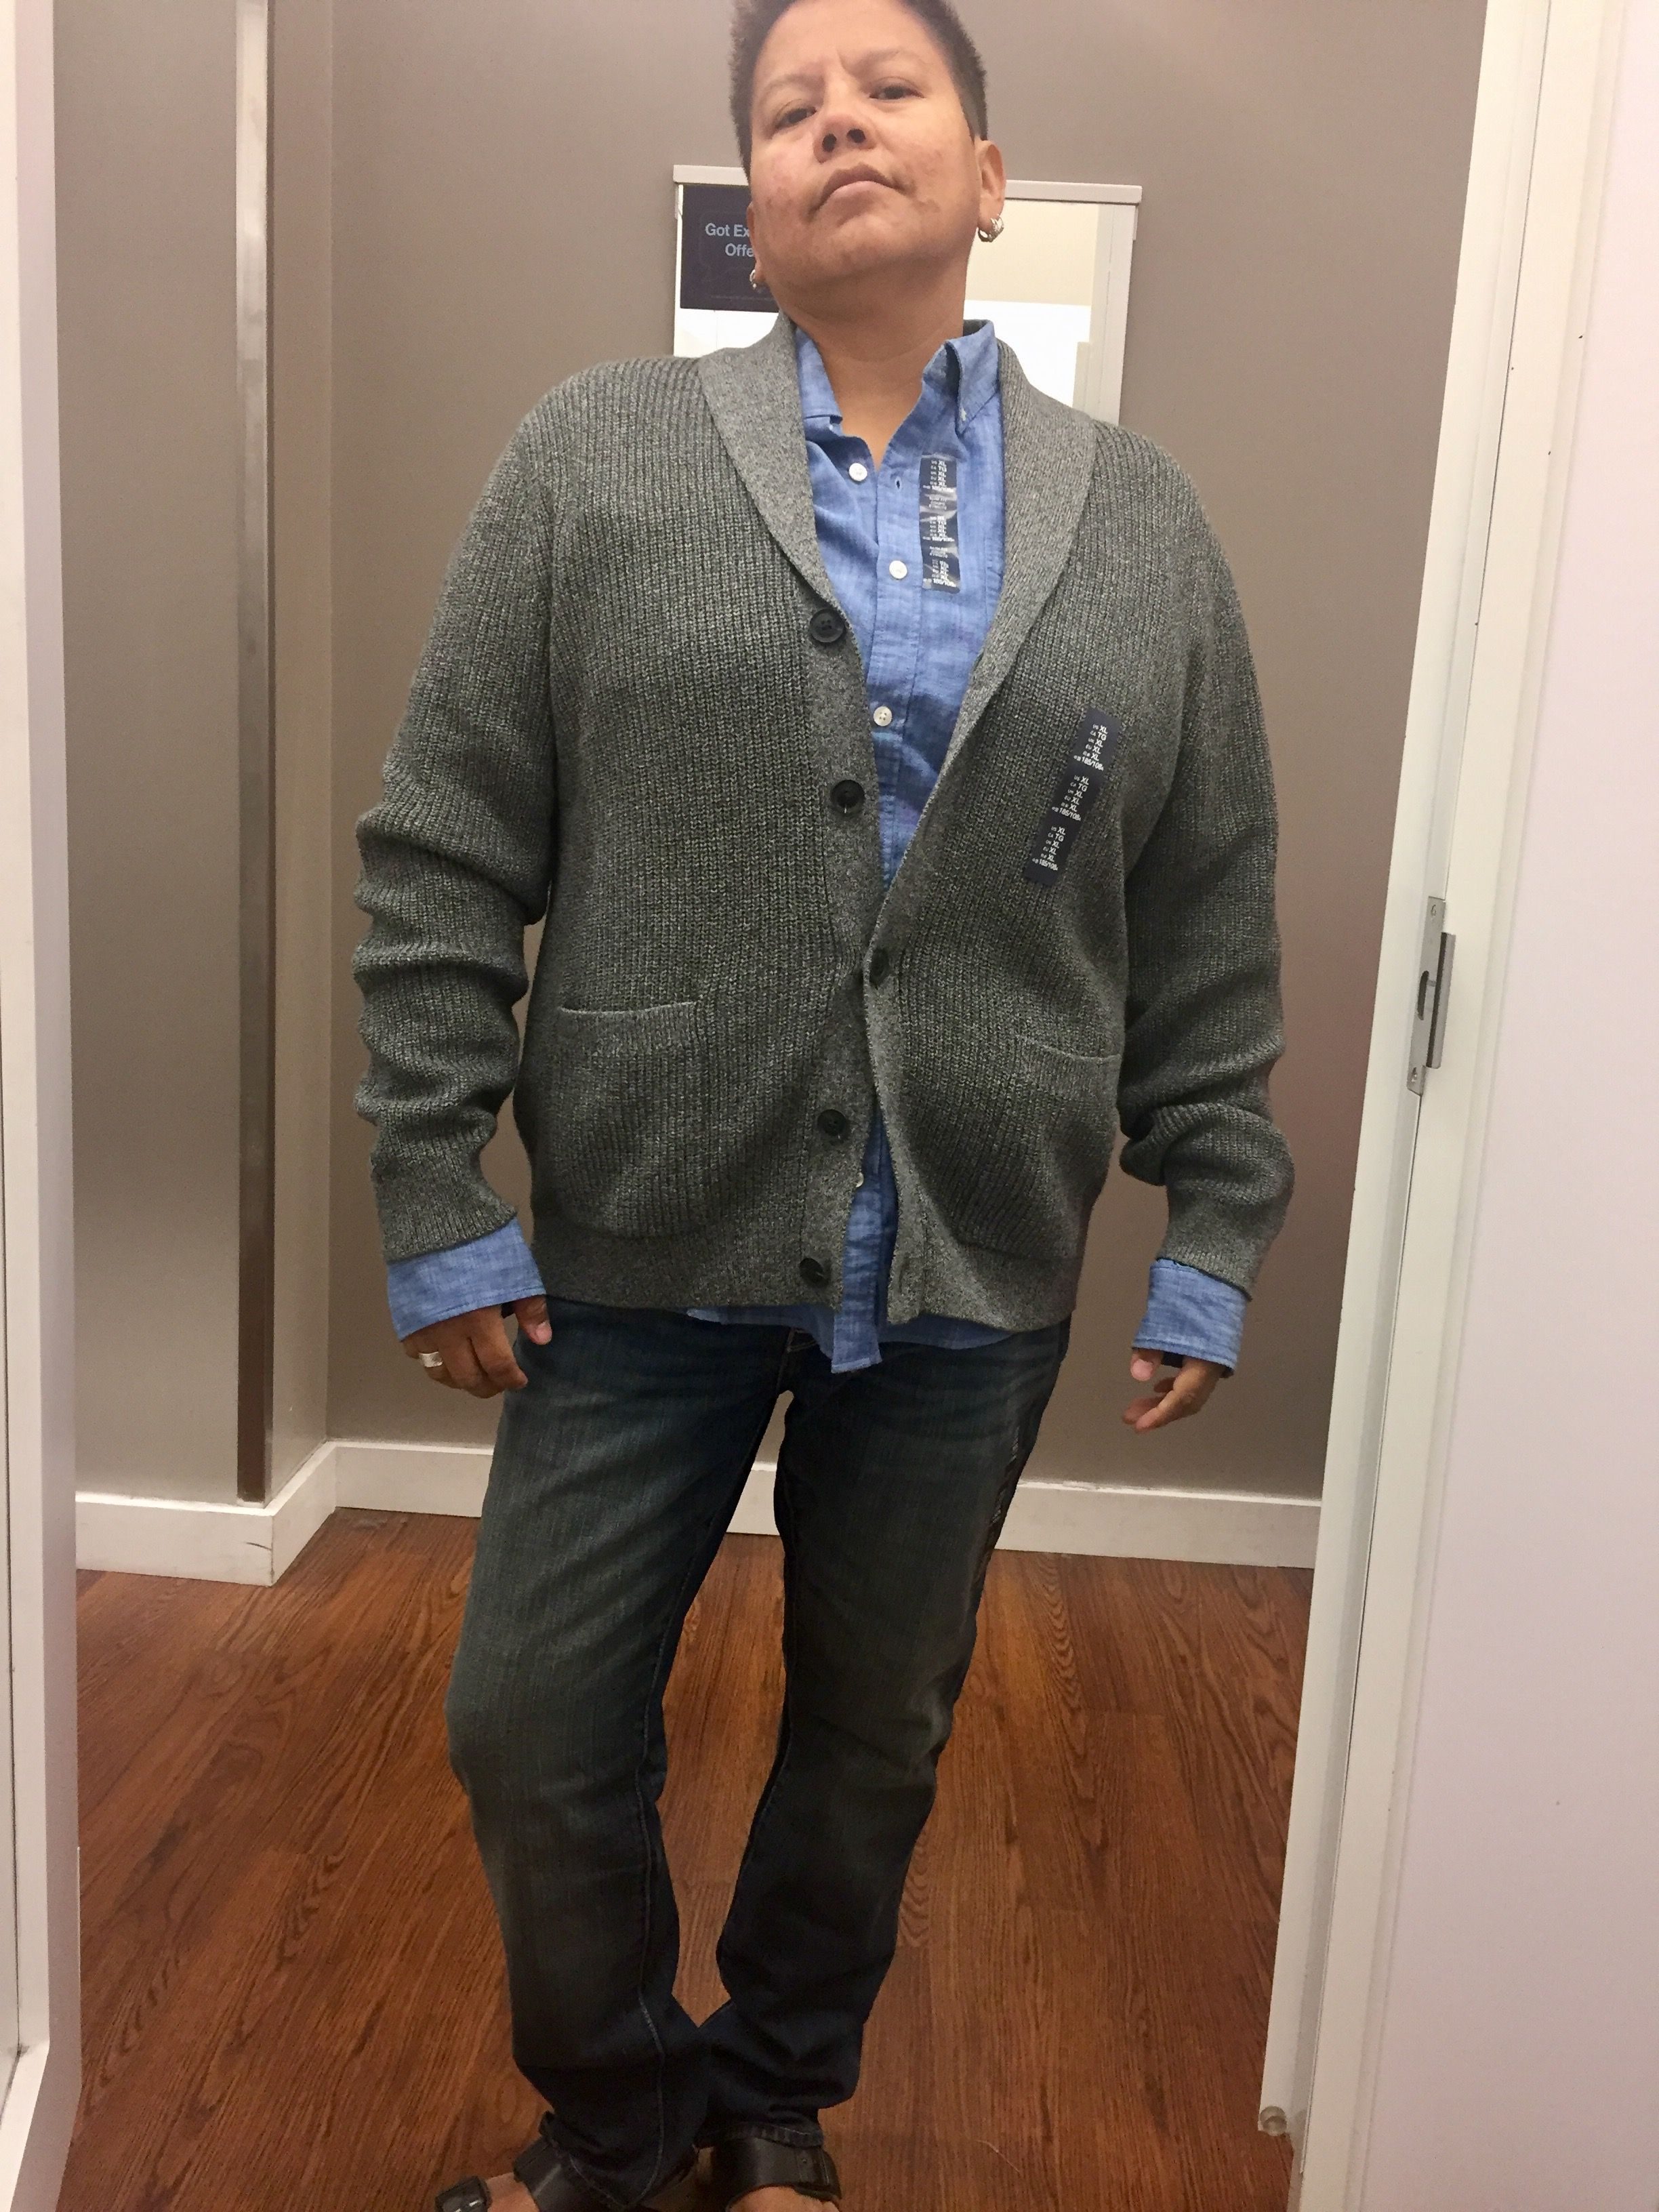 Dark blue fitted jeans, paisley white shirt under a grey cardigan ...